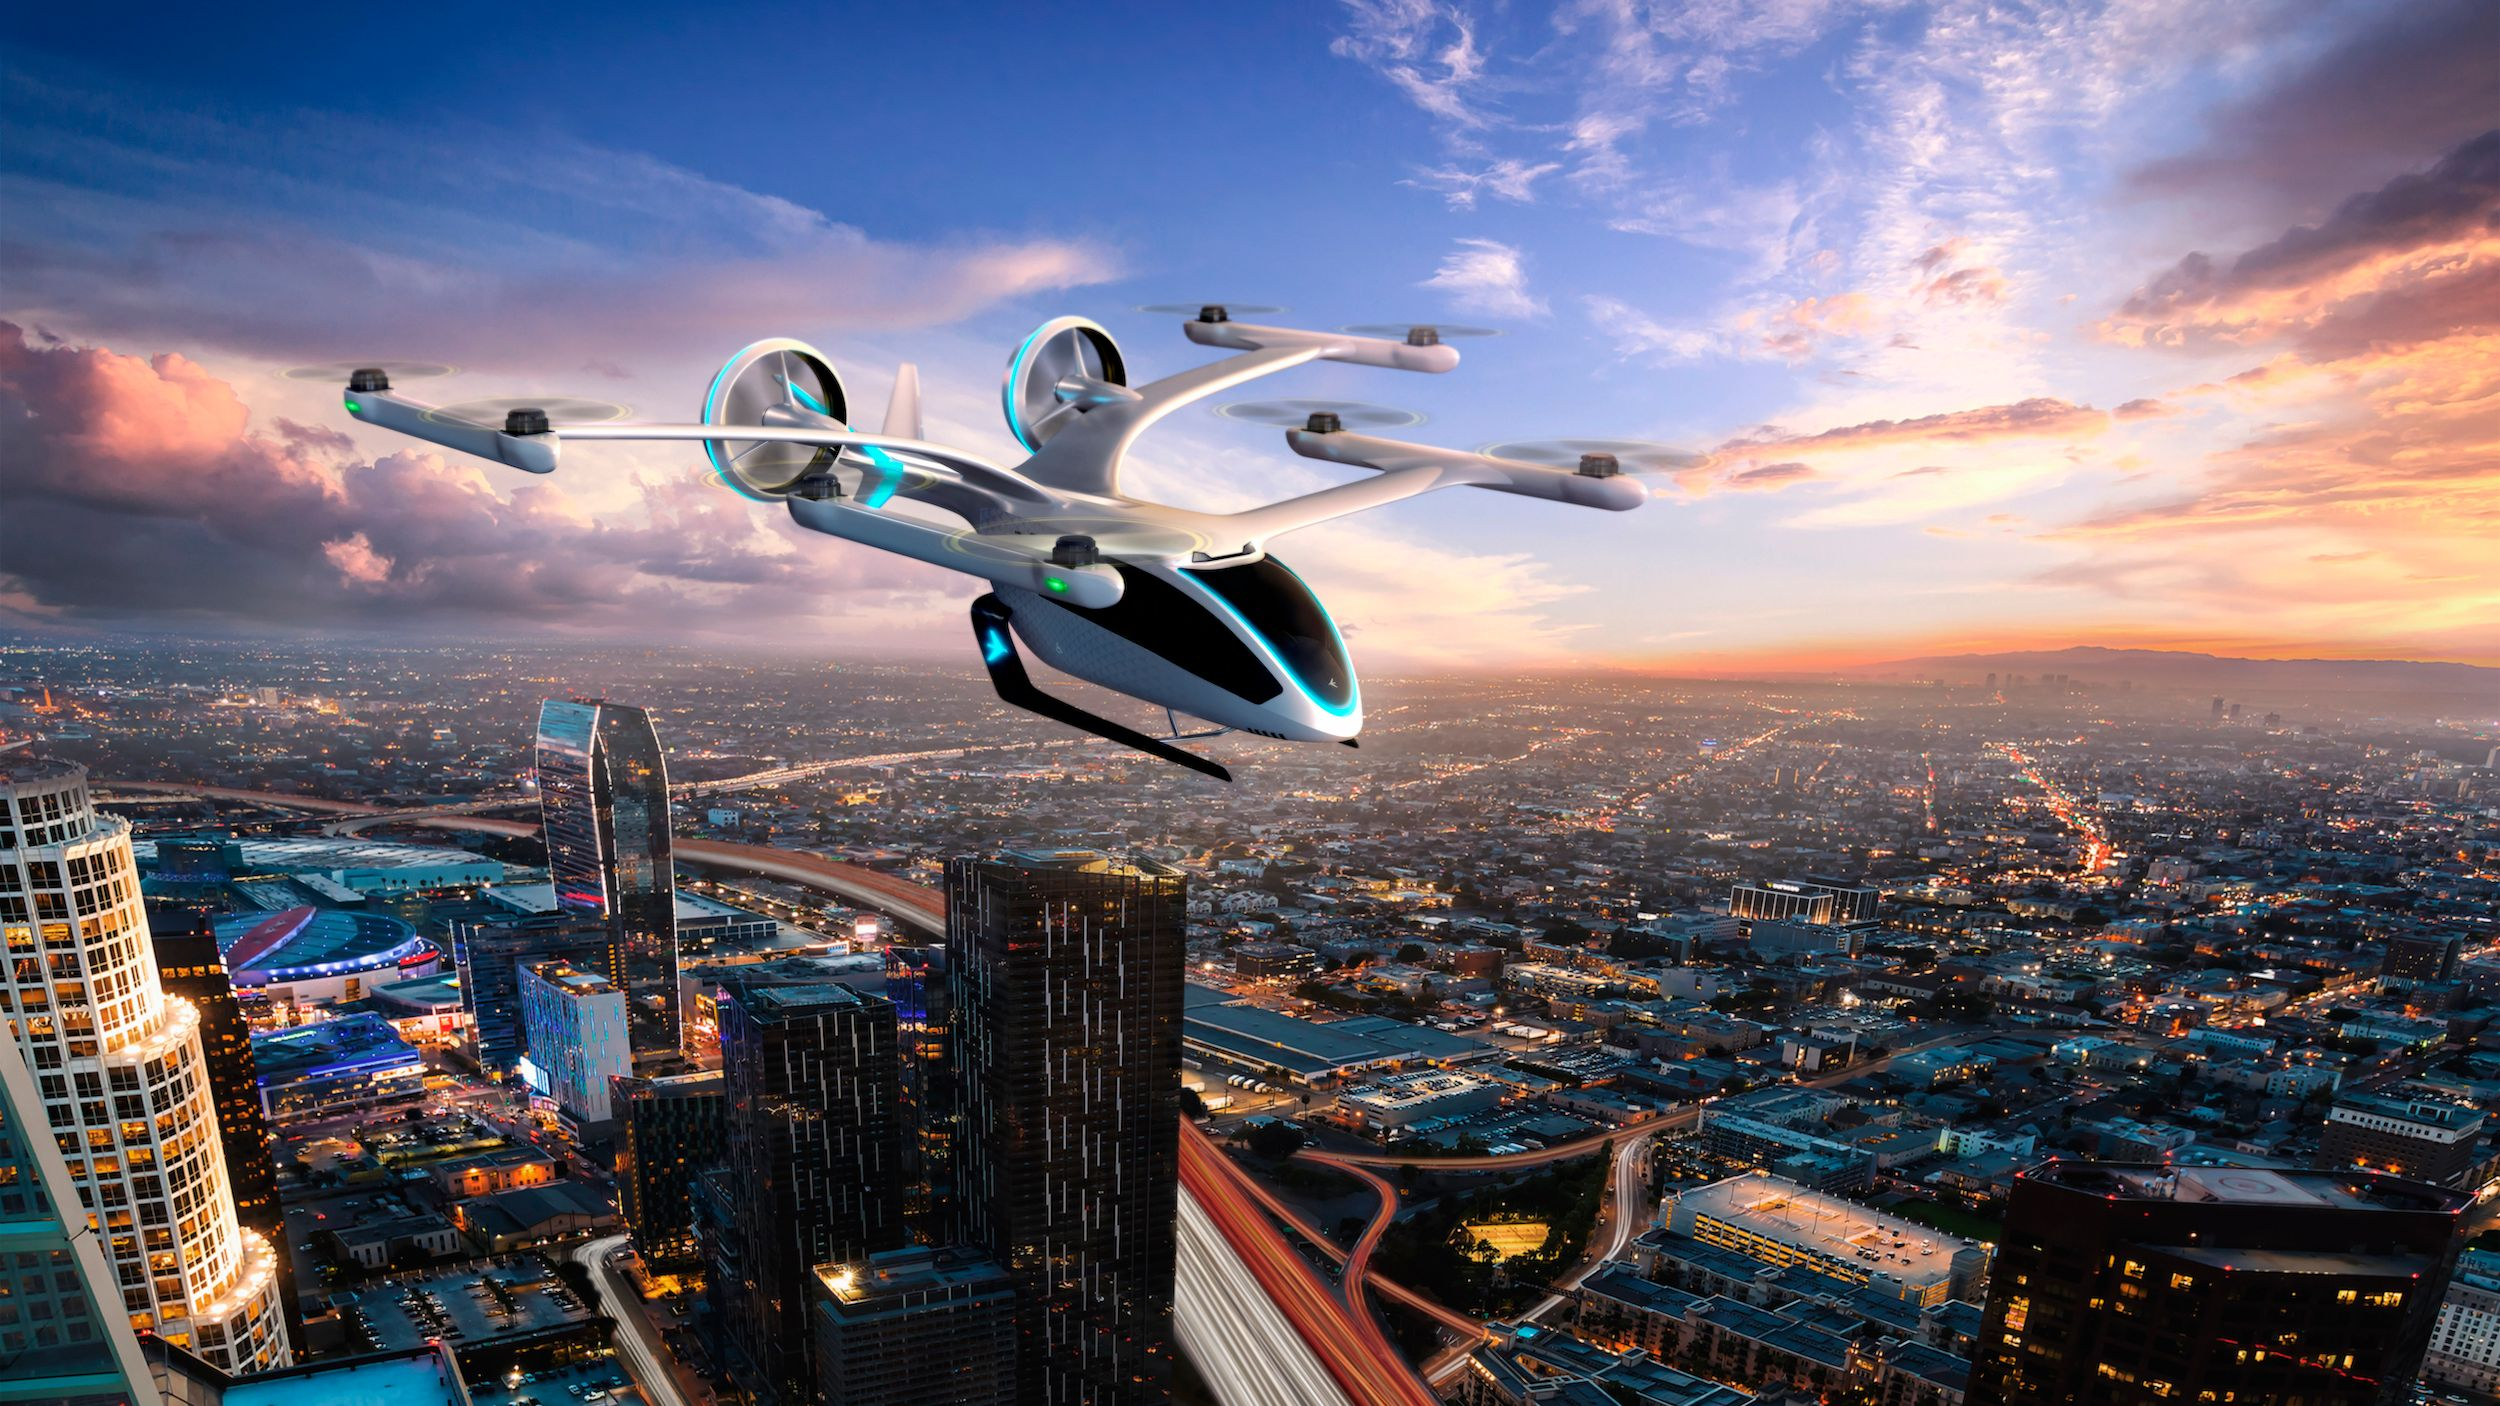 Fancy the Uber Elevate? These 5 futuristic technologies will be a reality sooner than you think